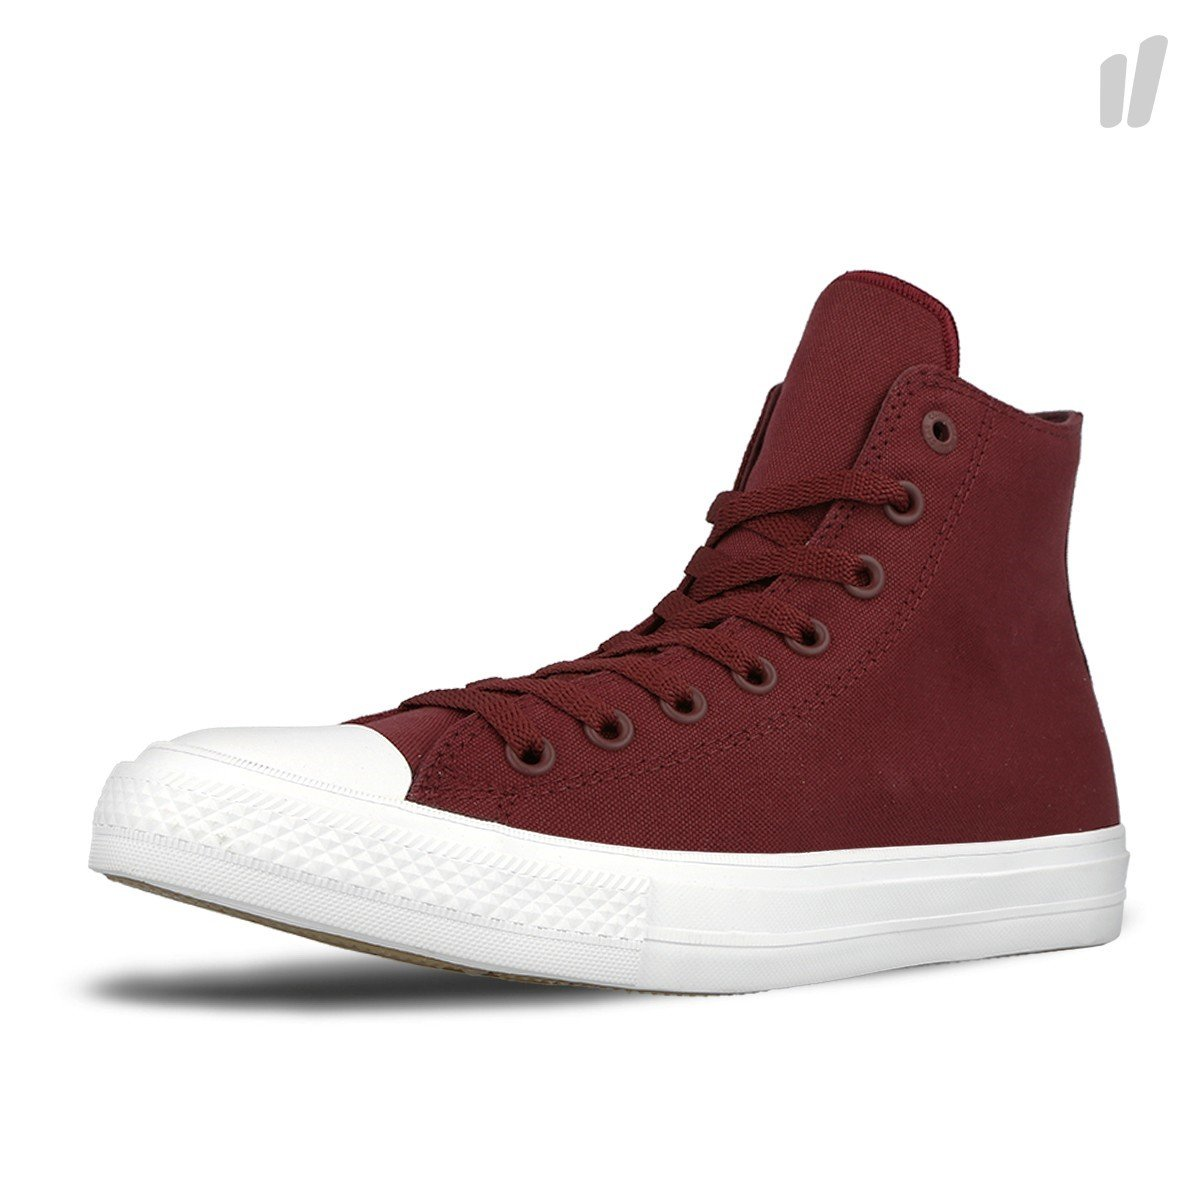 Converse Unisex Chuck Taylor All-Star High-Top Casual Sneakers in Classic Style and Color and Durable Canvas Uppers B076QJS2DW 9.5 B(M) US|Deep Bordeaux